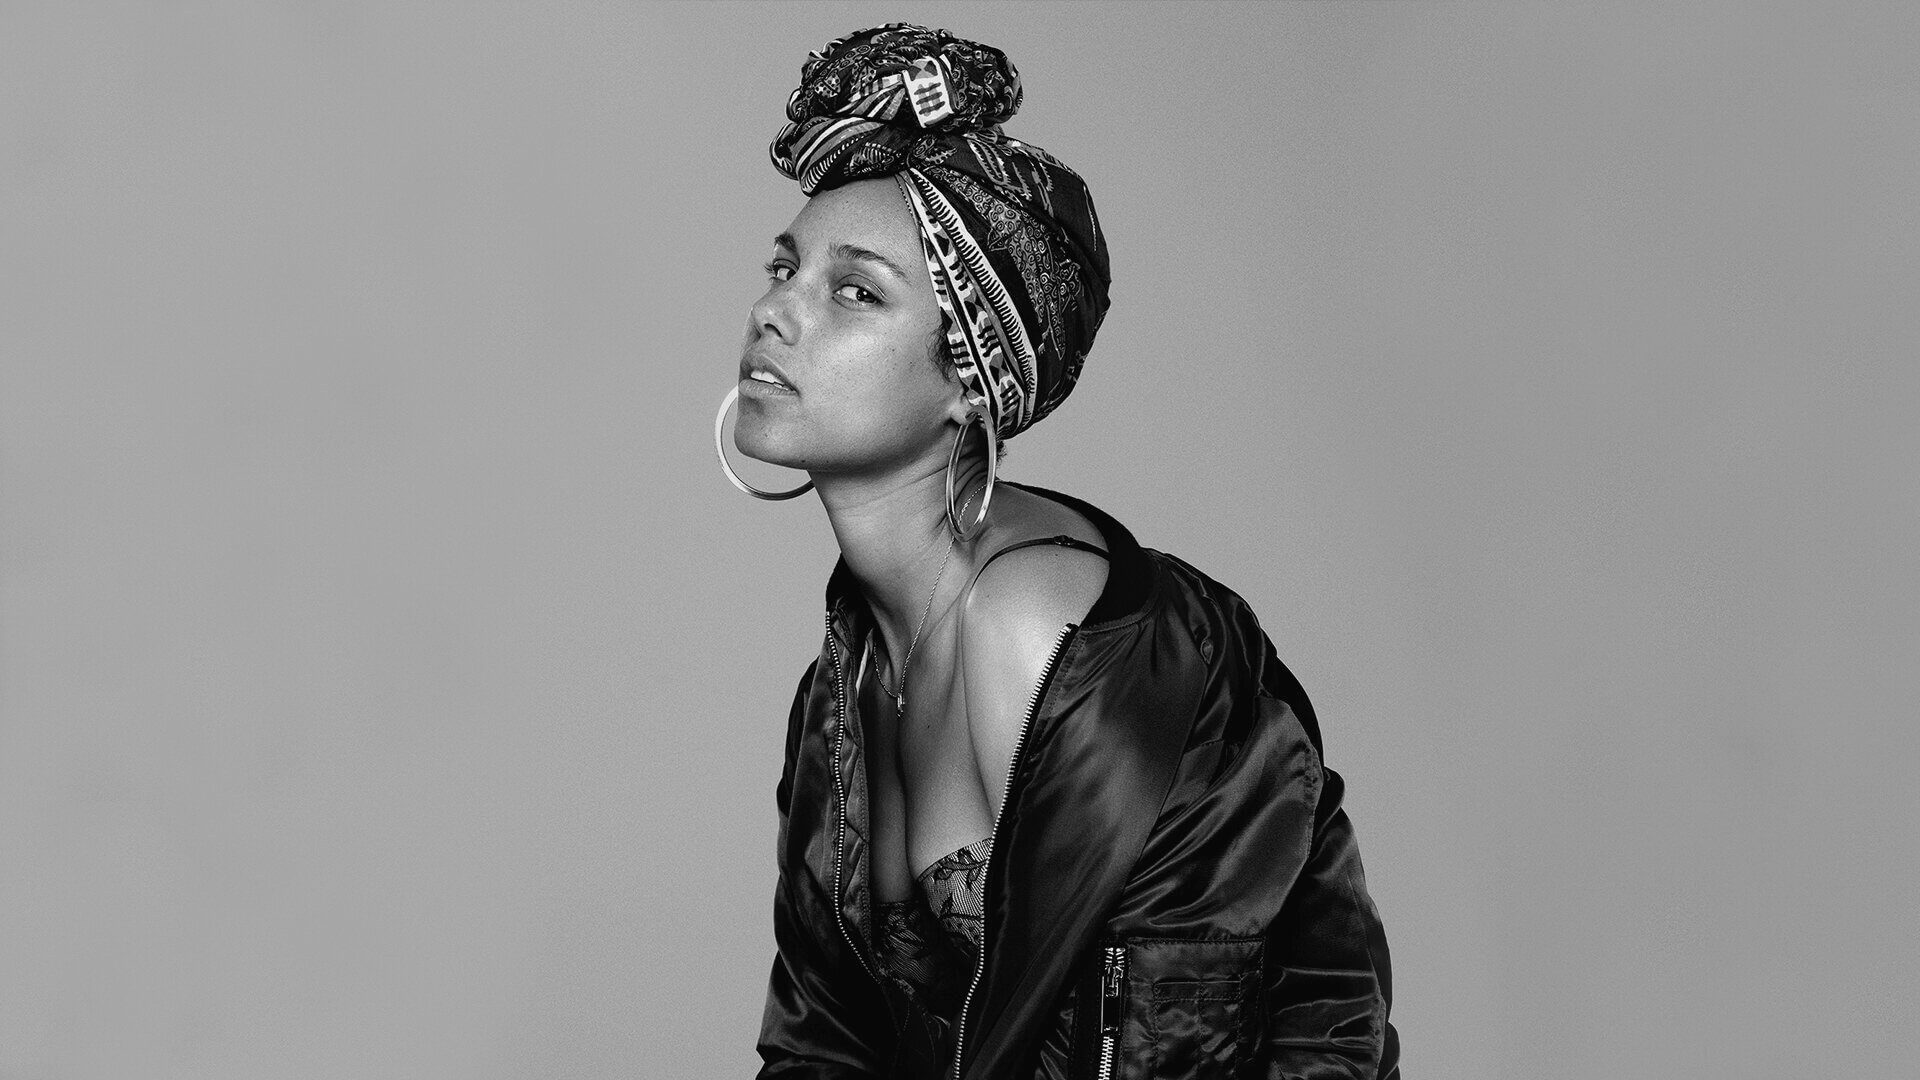 alicia-keys-in-common-audio_9310999-25300_1920x1080